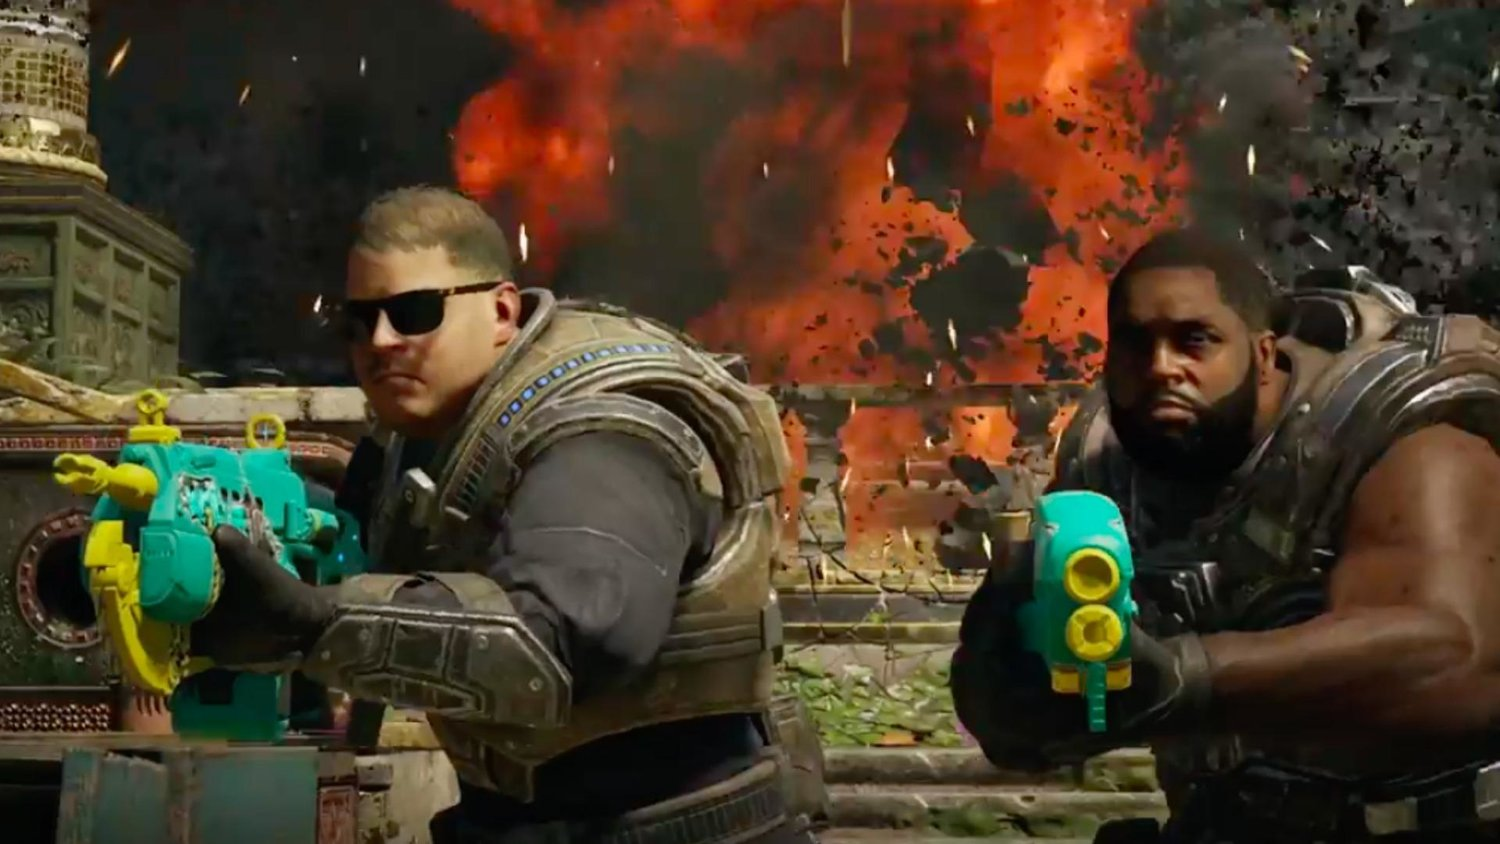 RUN THE JEWELS Can No Longer Say F***boy in GEARS OF WAR 4